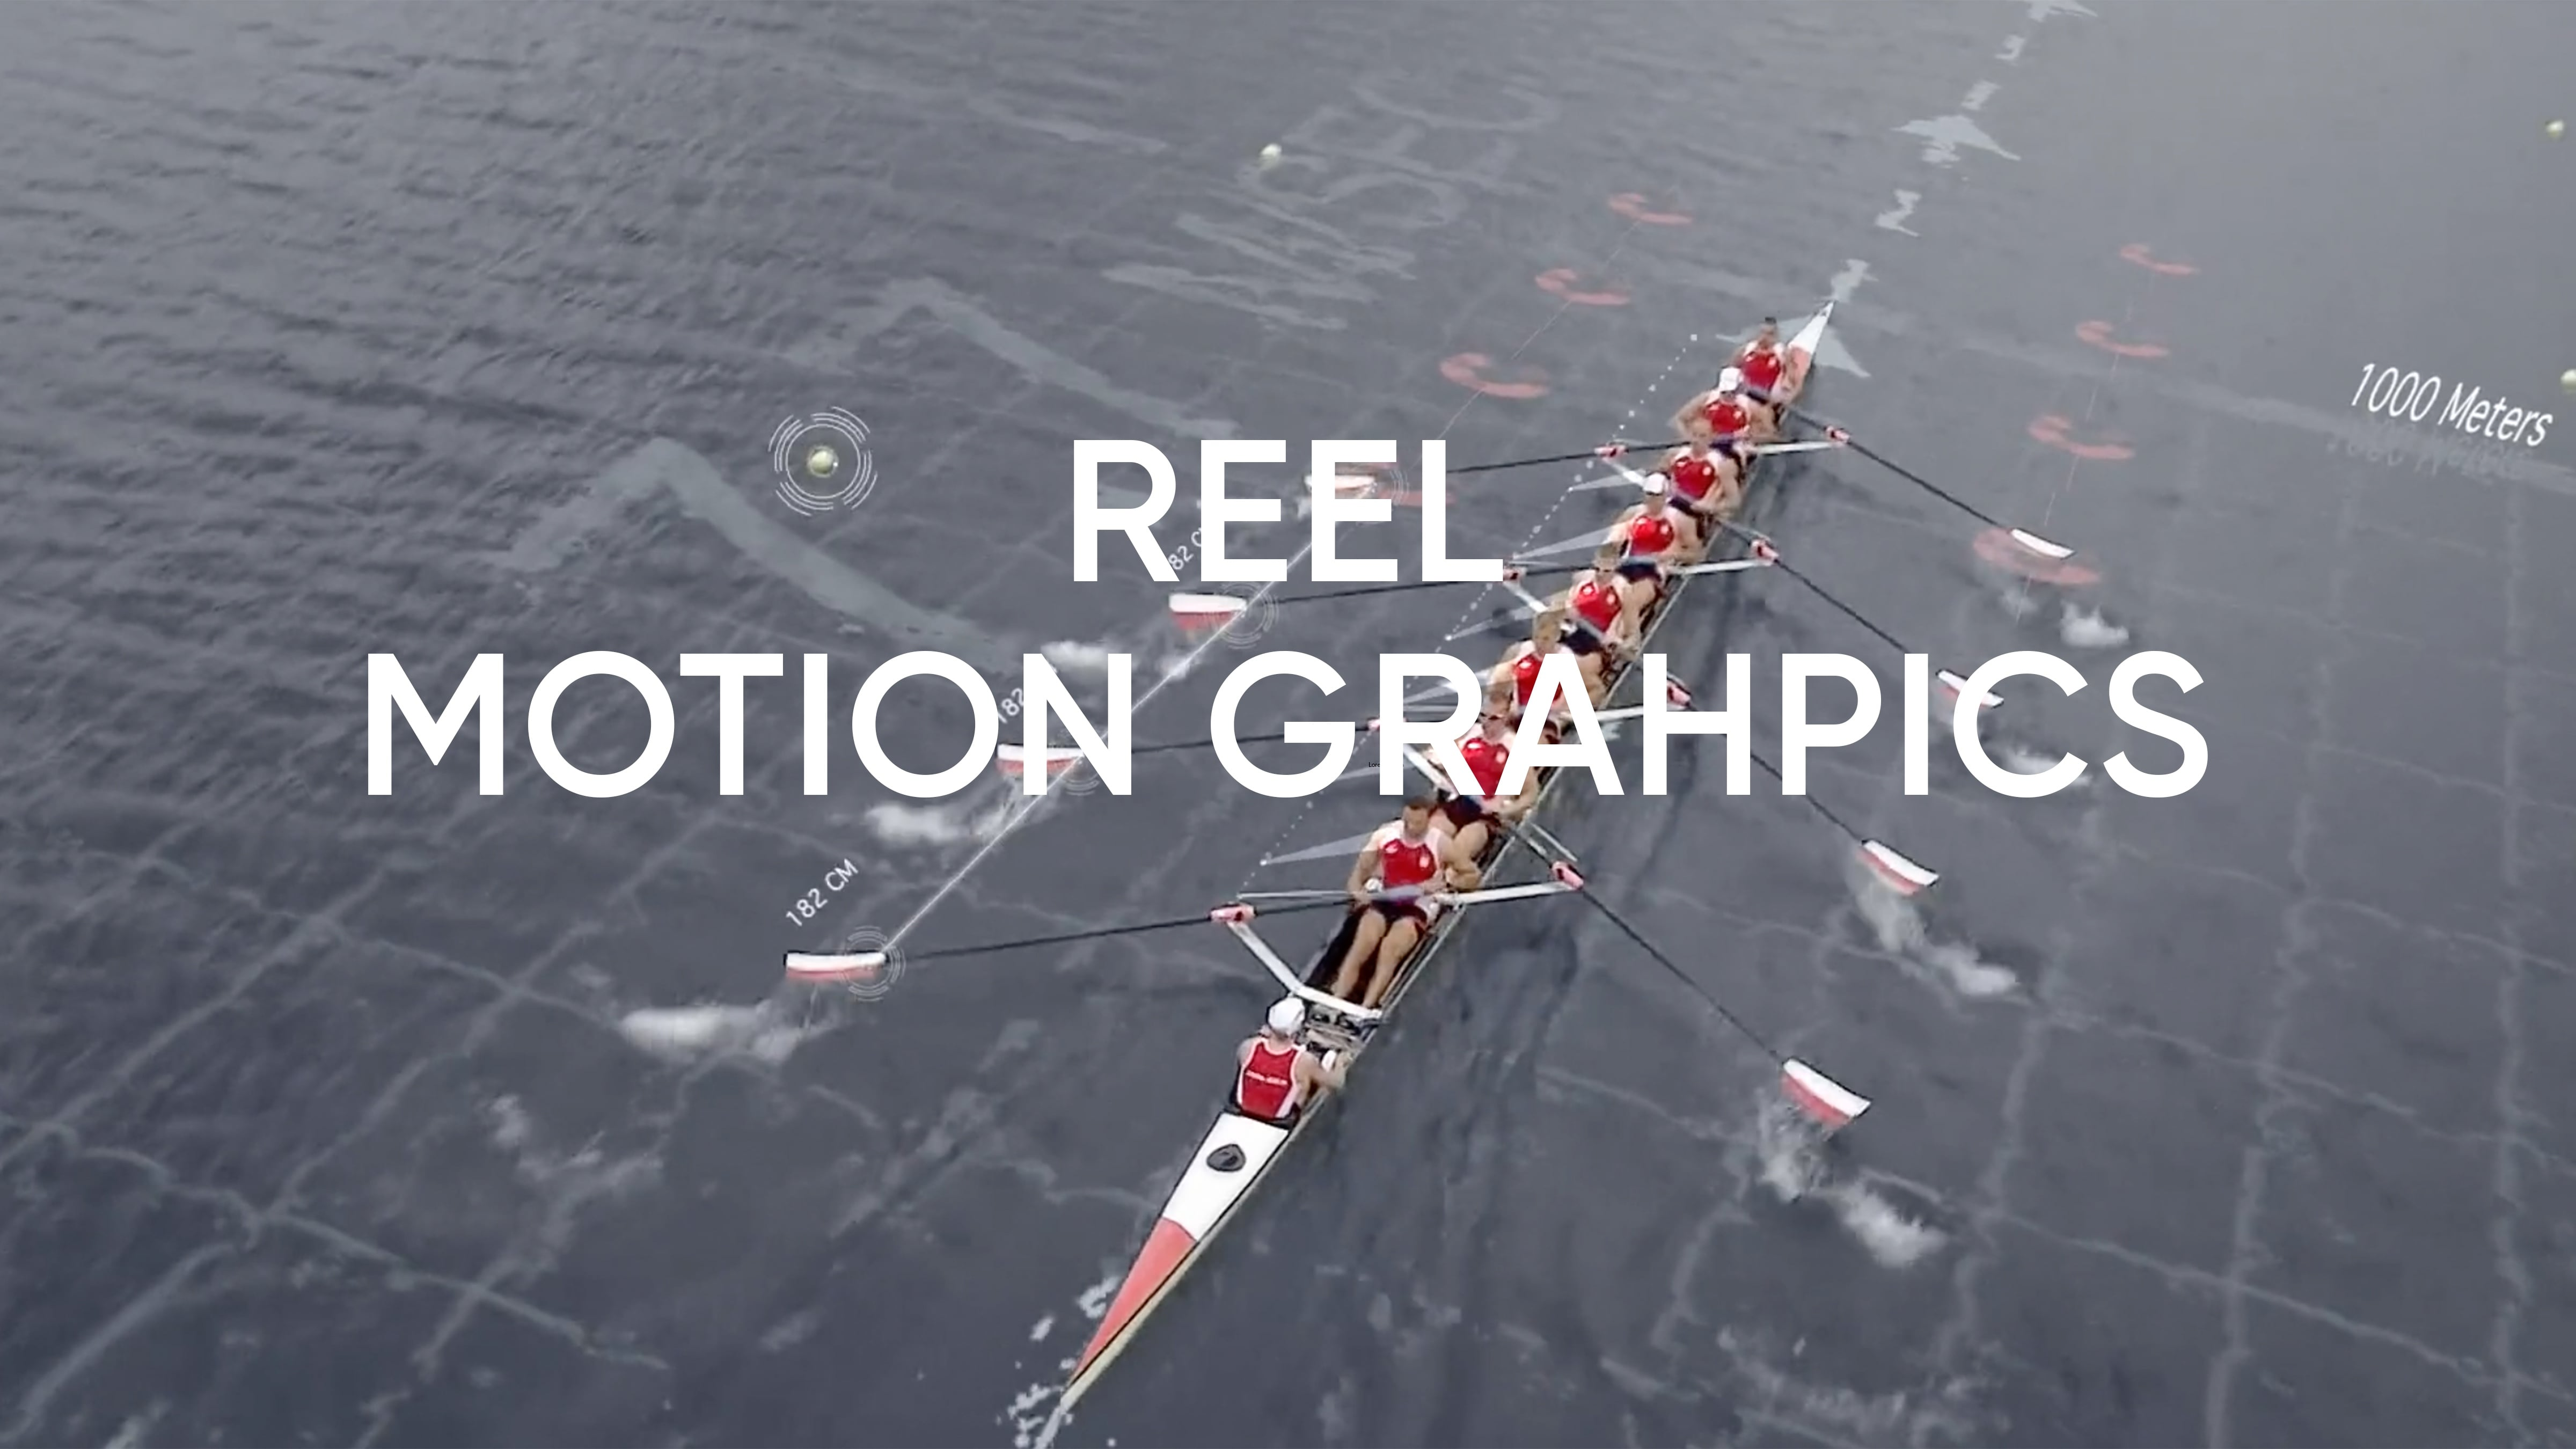 this motion graphic reel features examples of different kind of motion graphics CosmicVFX has completed.